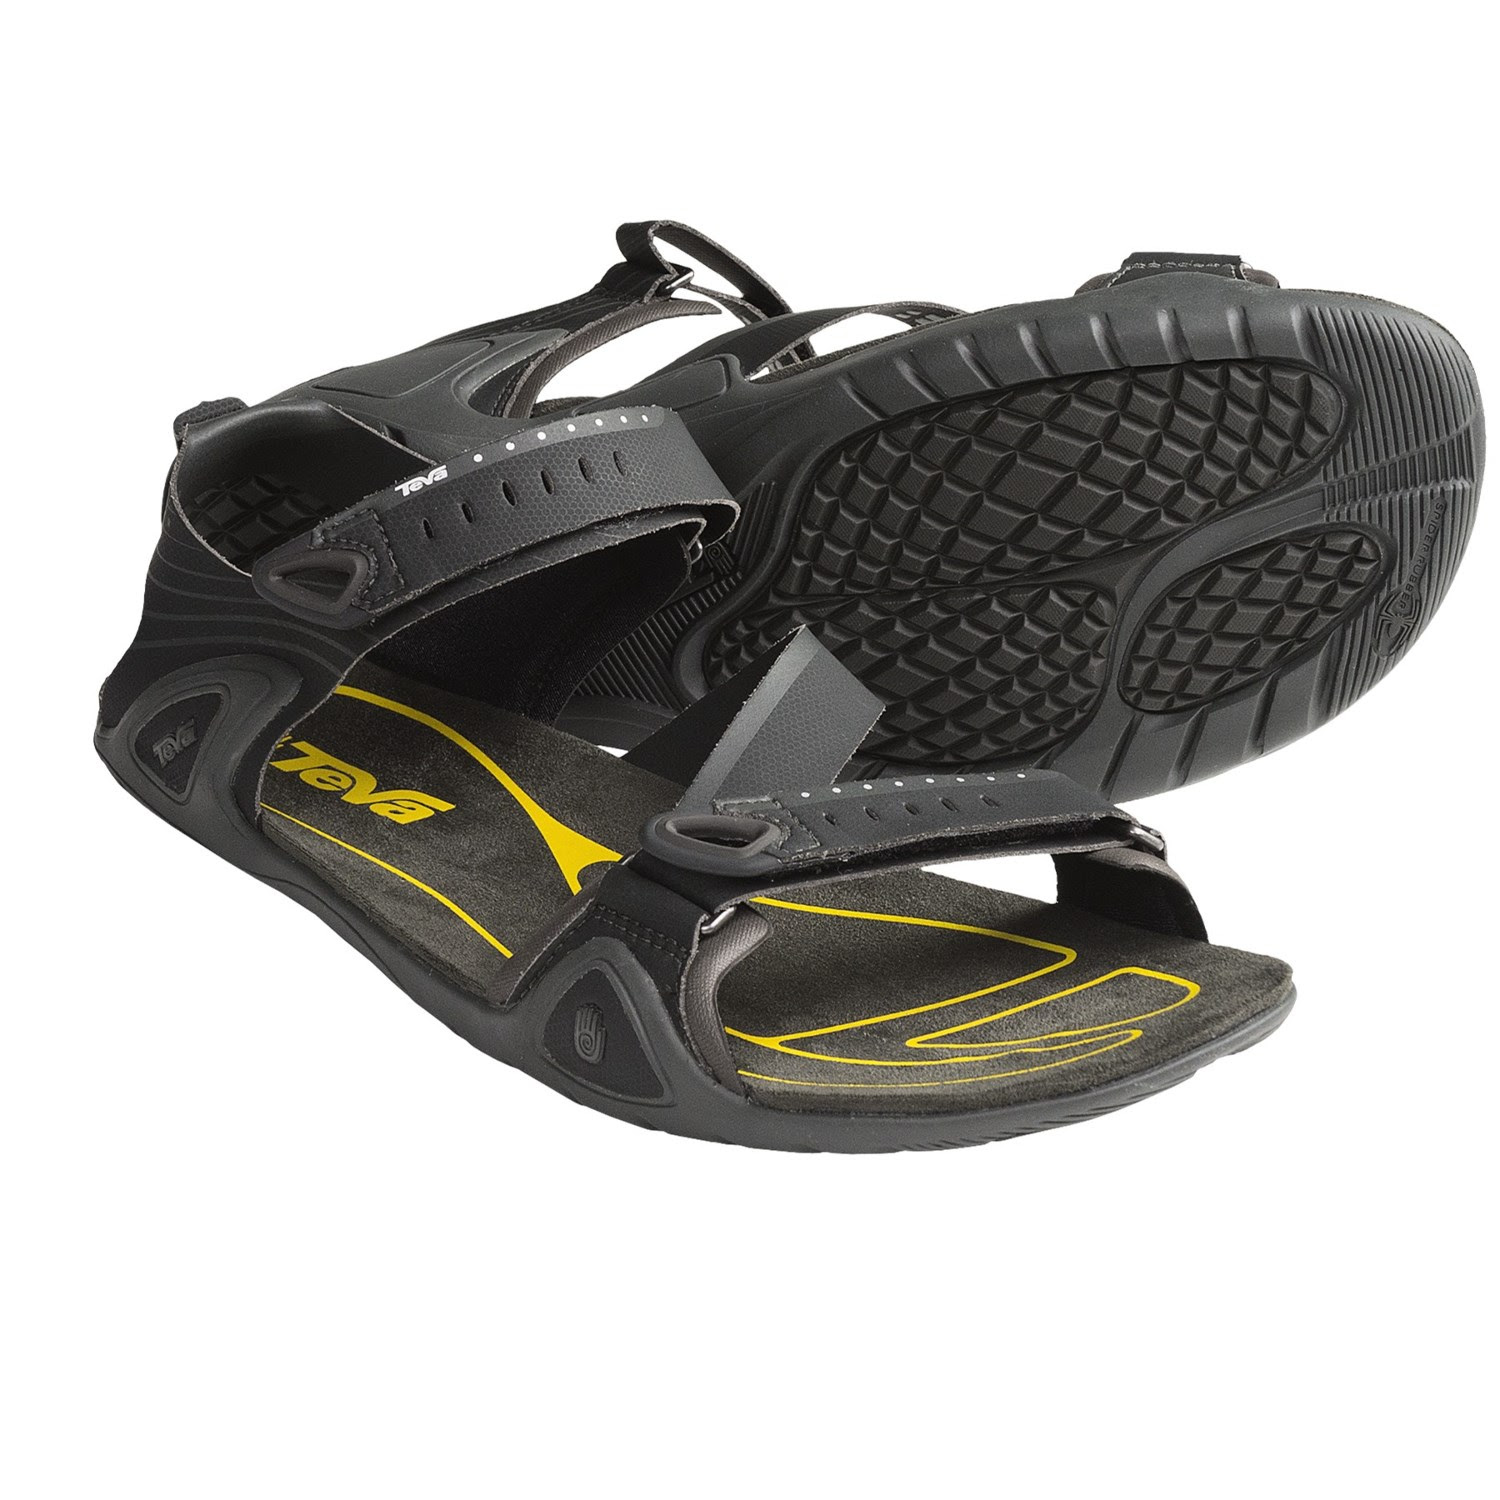 30d313102 Teva Northridge Sport Sandals (For Men) in Pirate Black